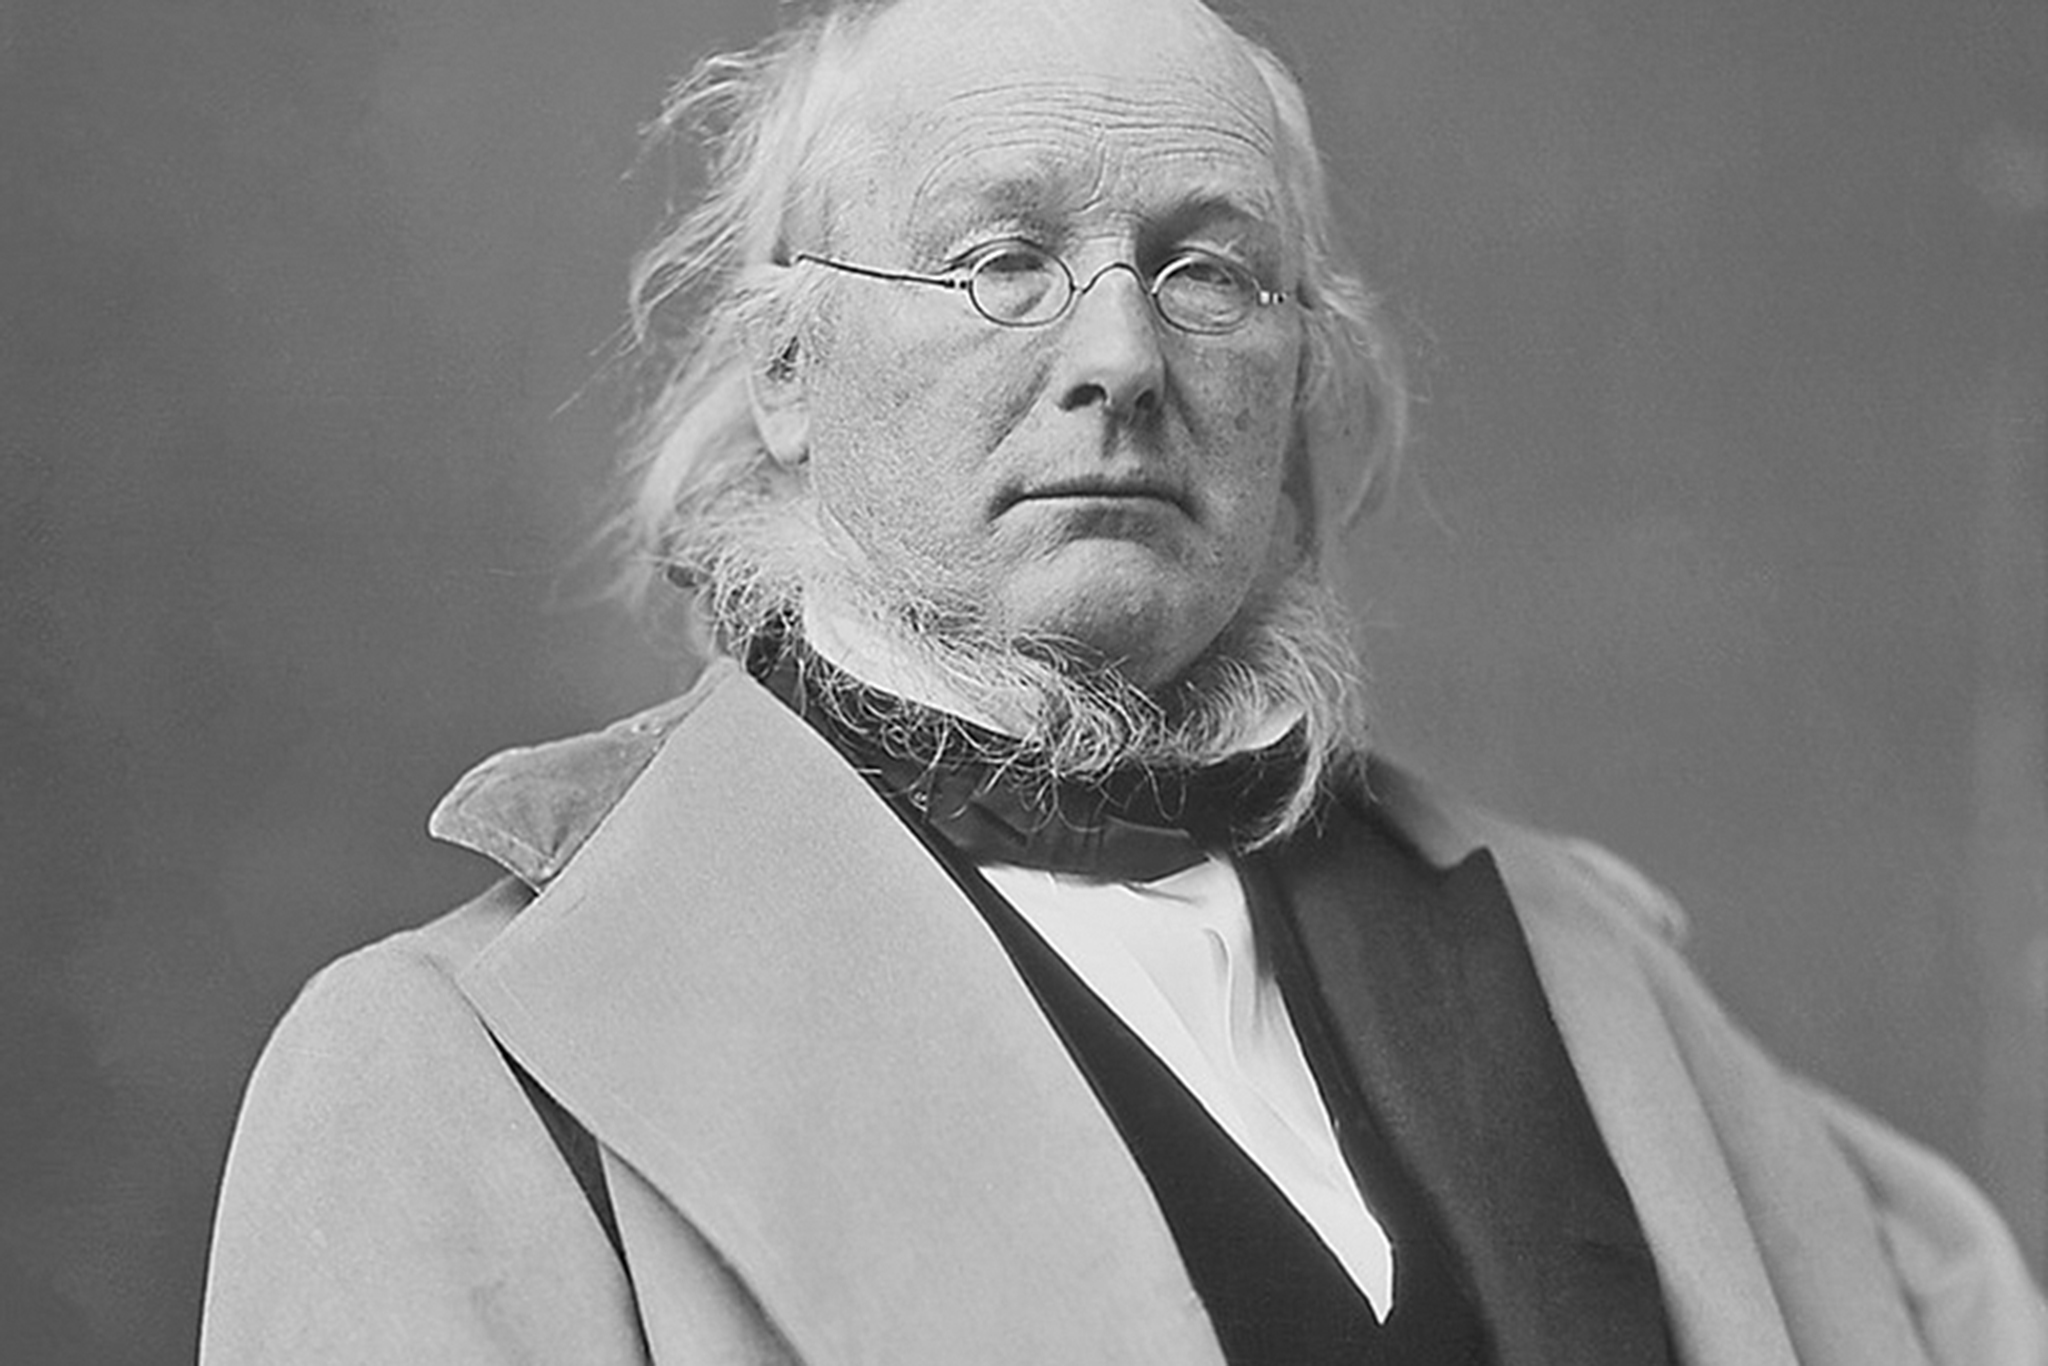 Horace Greeley: Universalist, founder of the New York Tribune, and defender of human rights